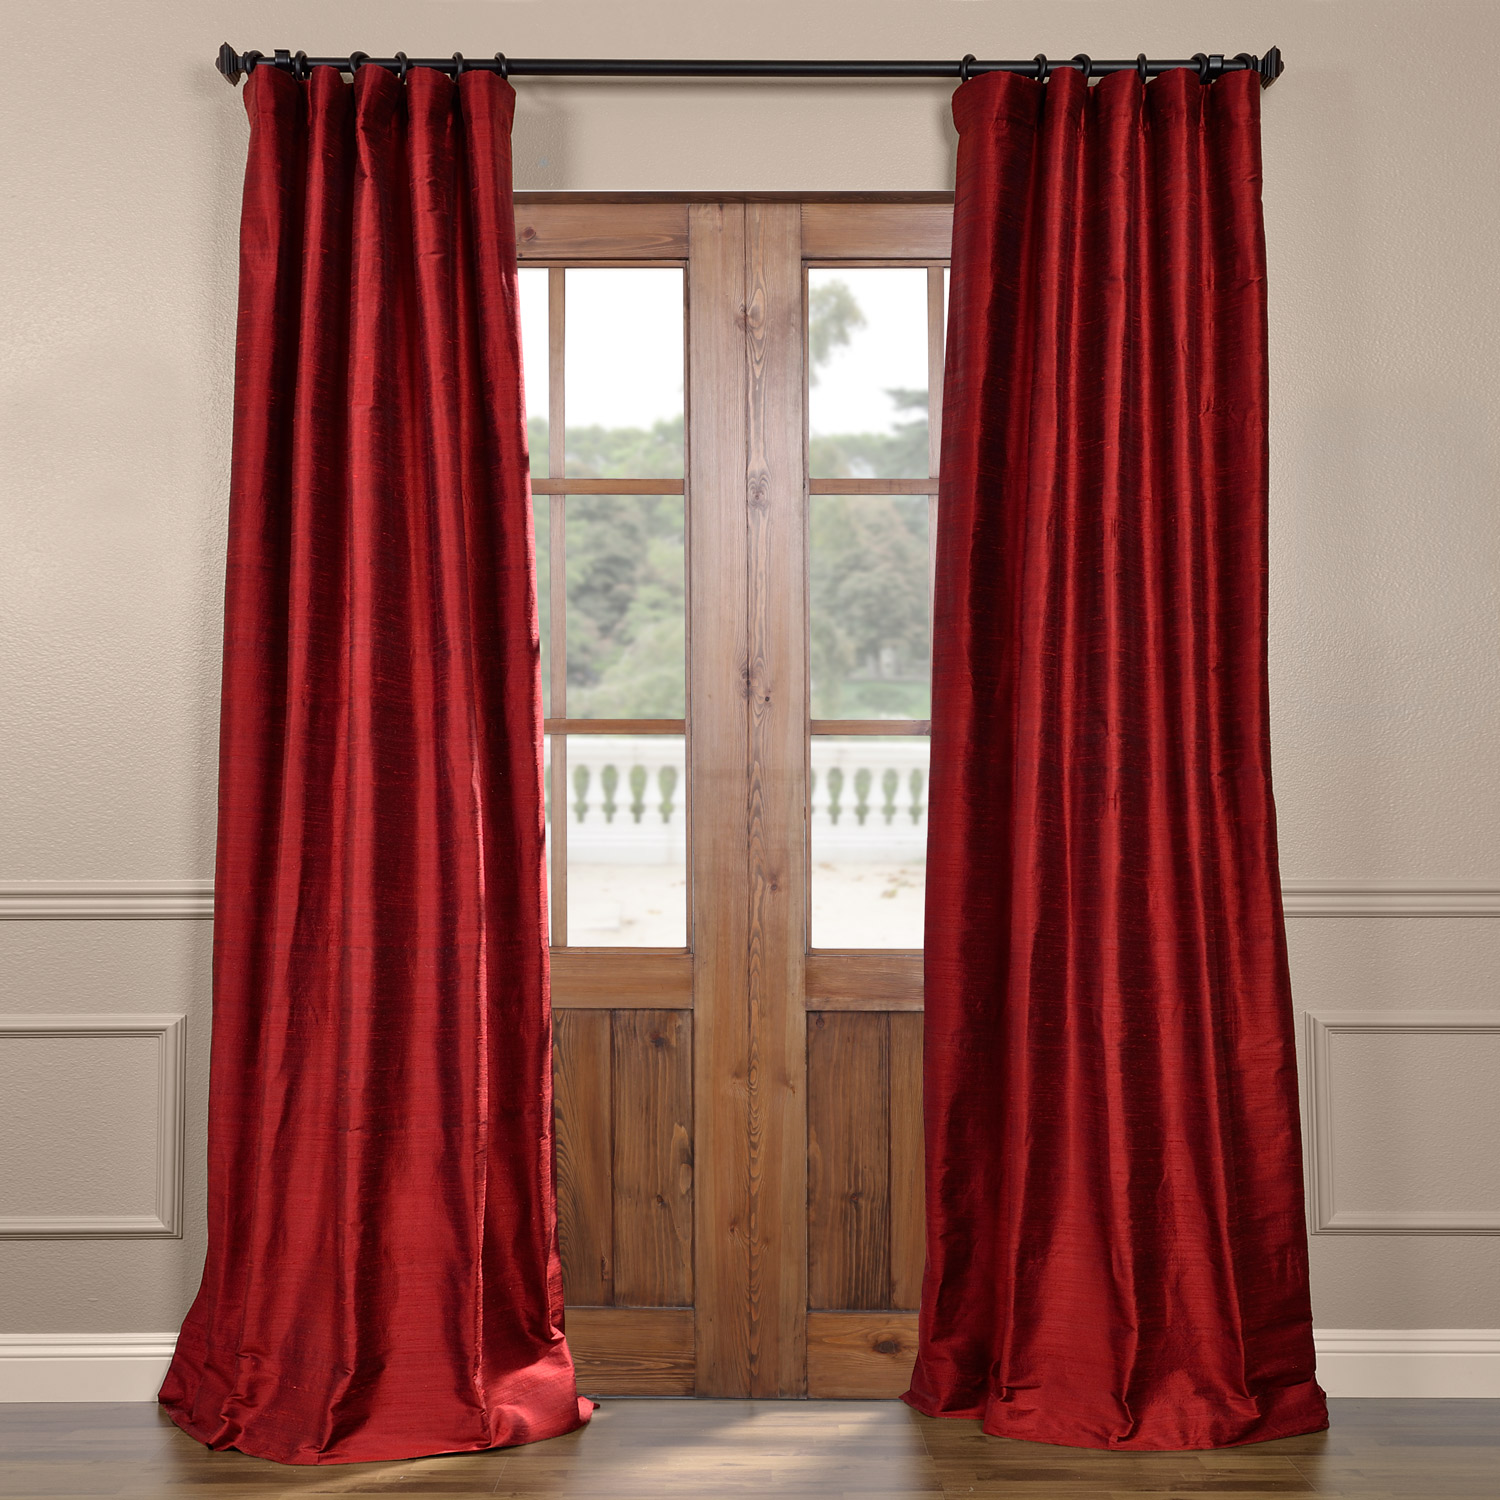 Chili Pepper Textured Dupioni Silk Curtain